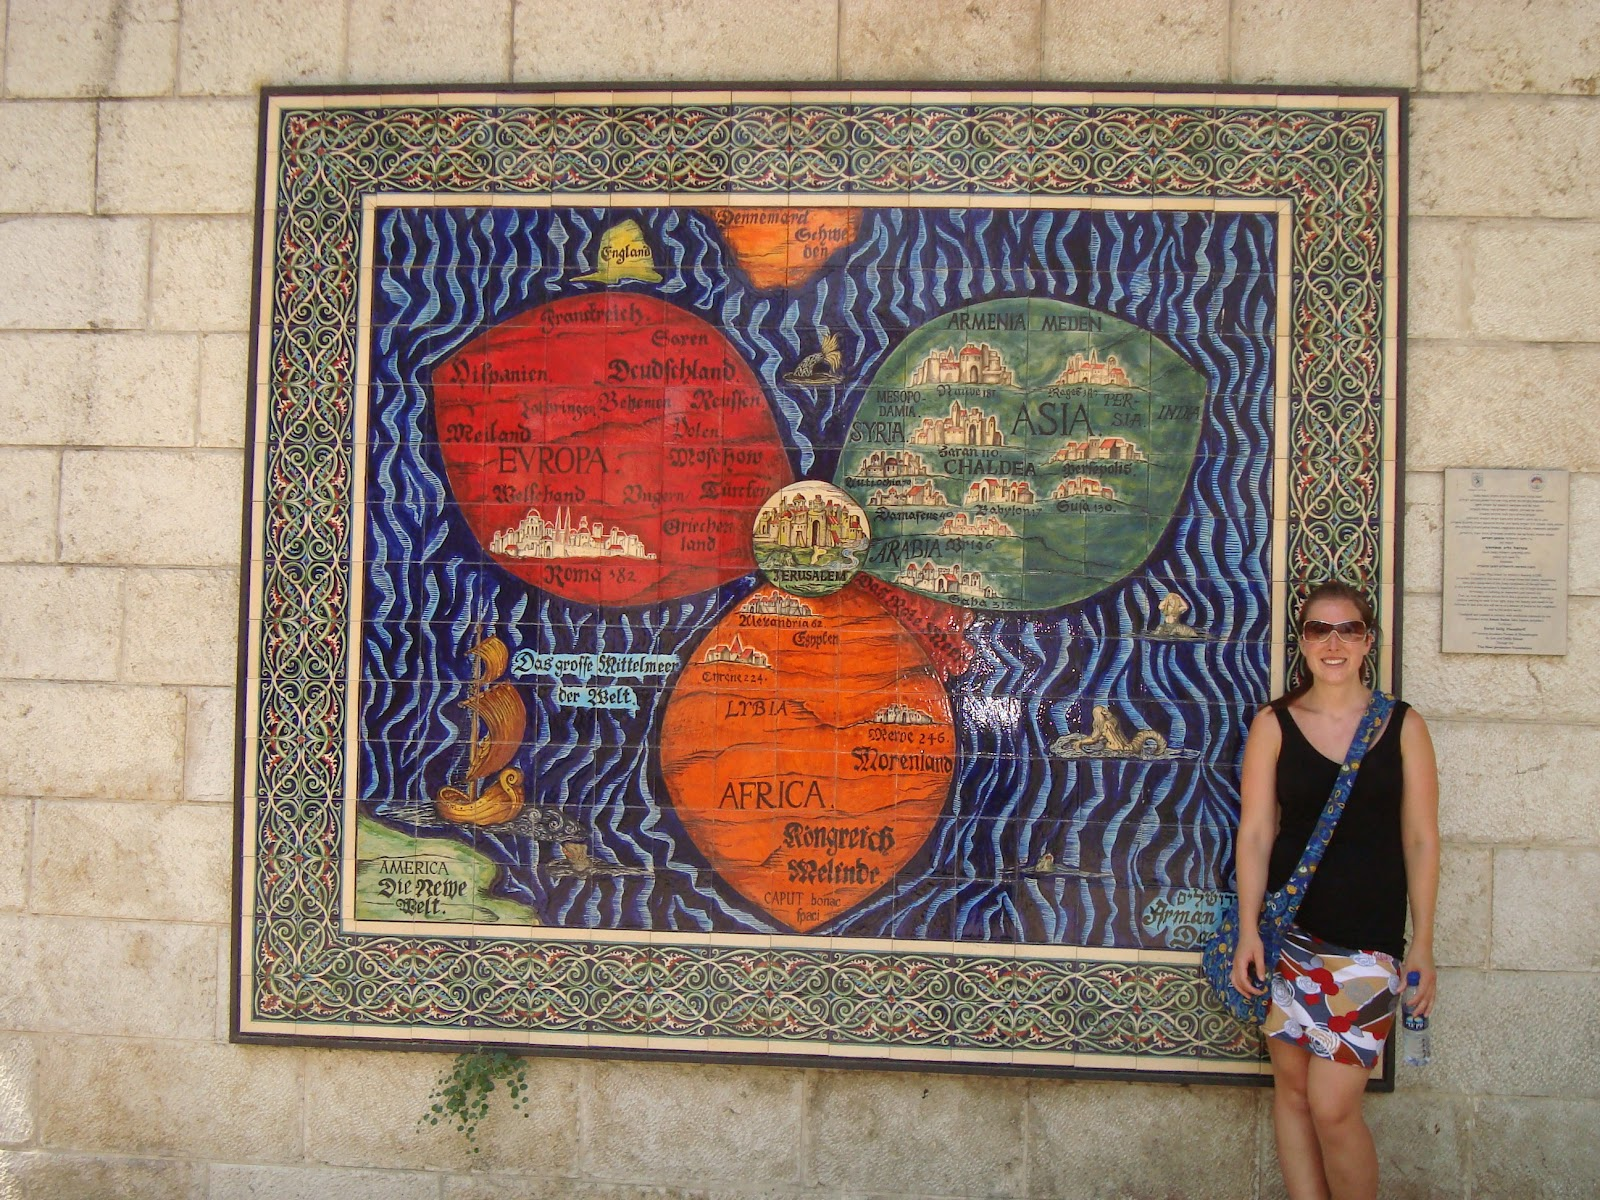 Samara and jeremys israel odyssey 2012 month in jerusalem i was excited when i saw this map and i had to have a picture of it its a map depicting jerusalem as the spiritual center of the world which is what gumiabroncs Images